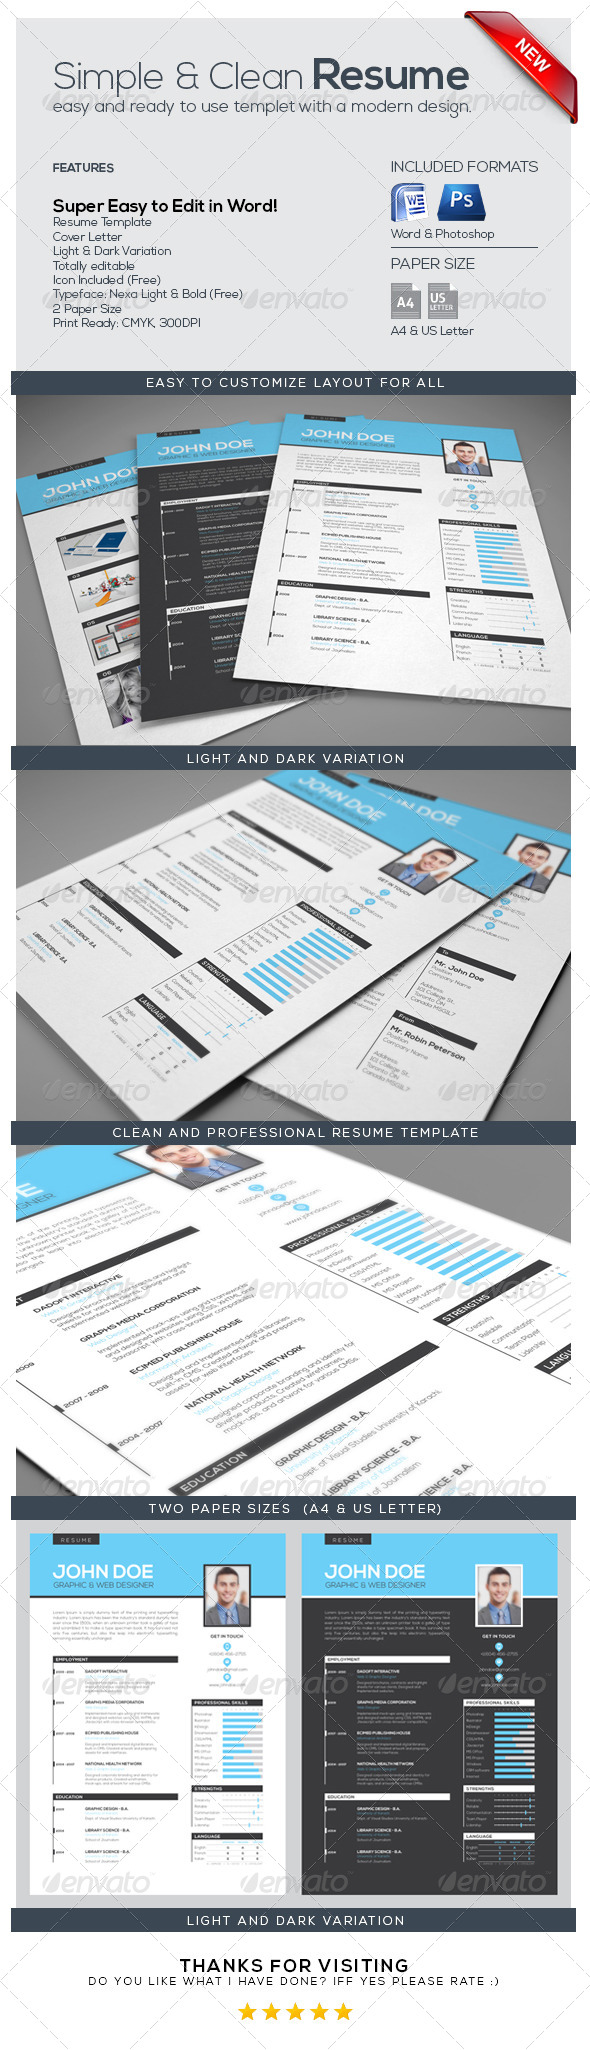 GraphicRiver Simple & Clean Resume CV 7089050